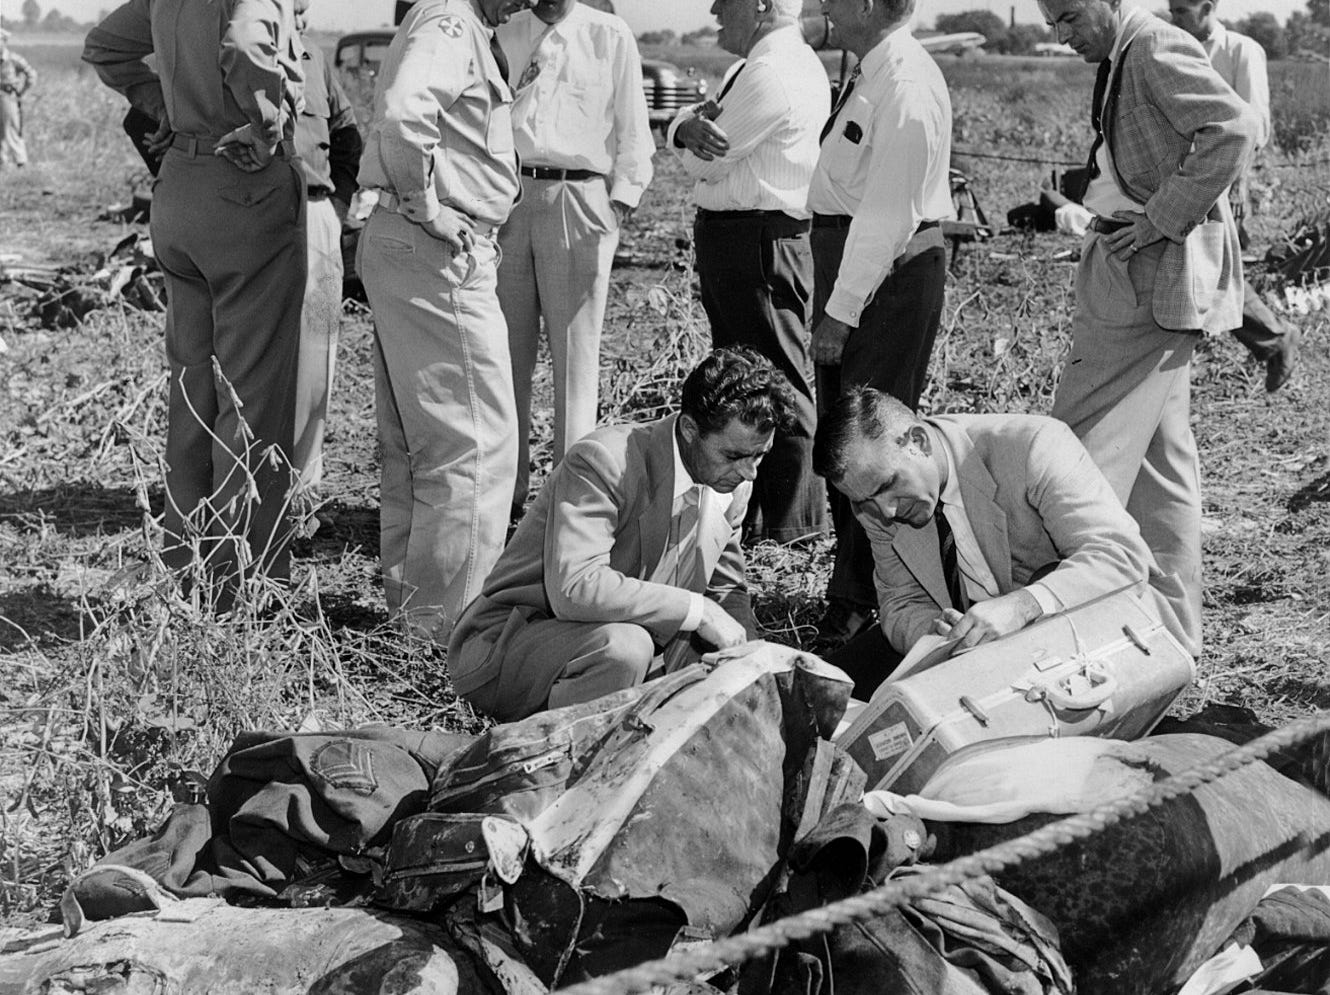 Lt. Col. Henry C.Leach, far left, of Ft. Knox, stands by as another officer watches two officials of Resort Airlines examine the log and other records recovered from wreckage of the plane that crashed at Standiford Field. The airline men, stooping, are: L.T. McNamara and Guy Tomberlin, right, both of Miami. some soldiers' luggage and clothing are shown.